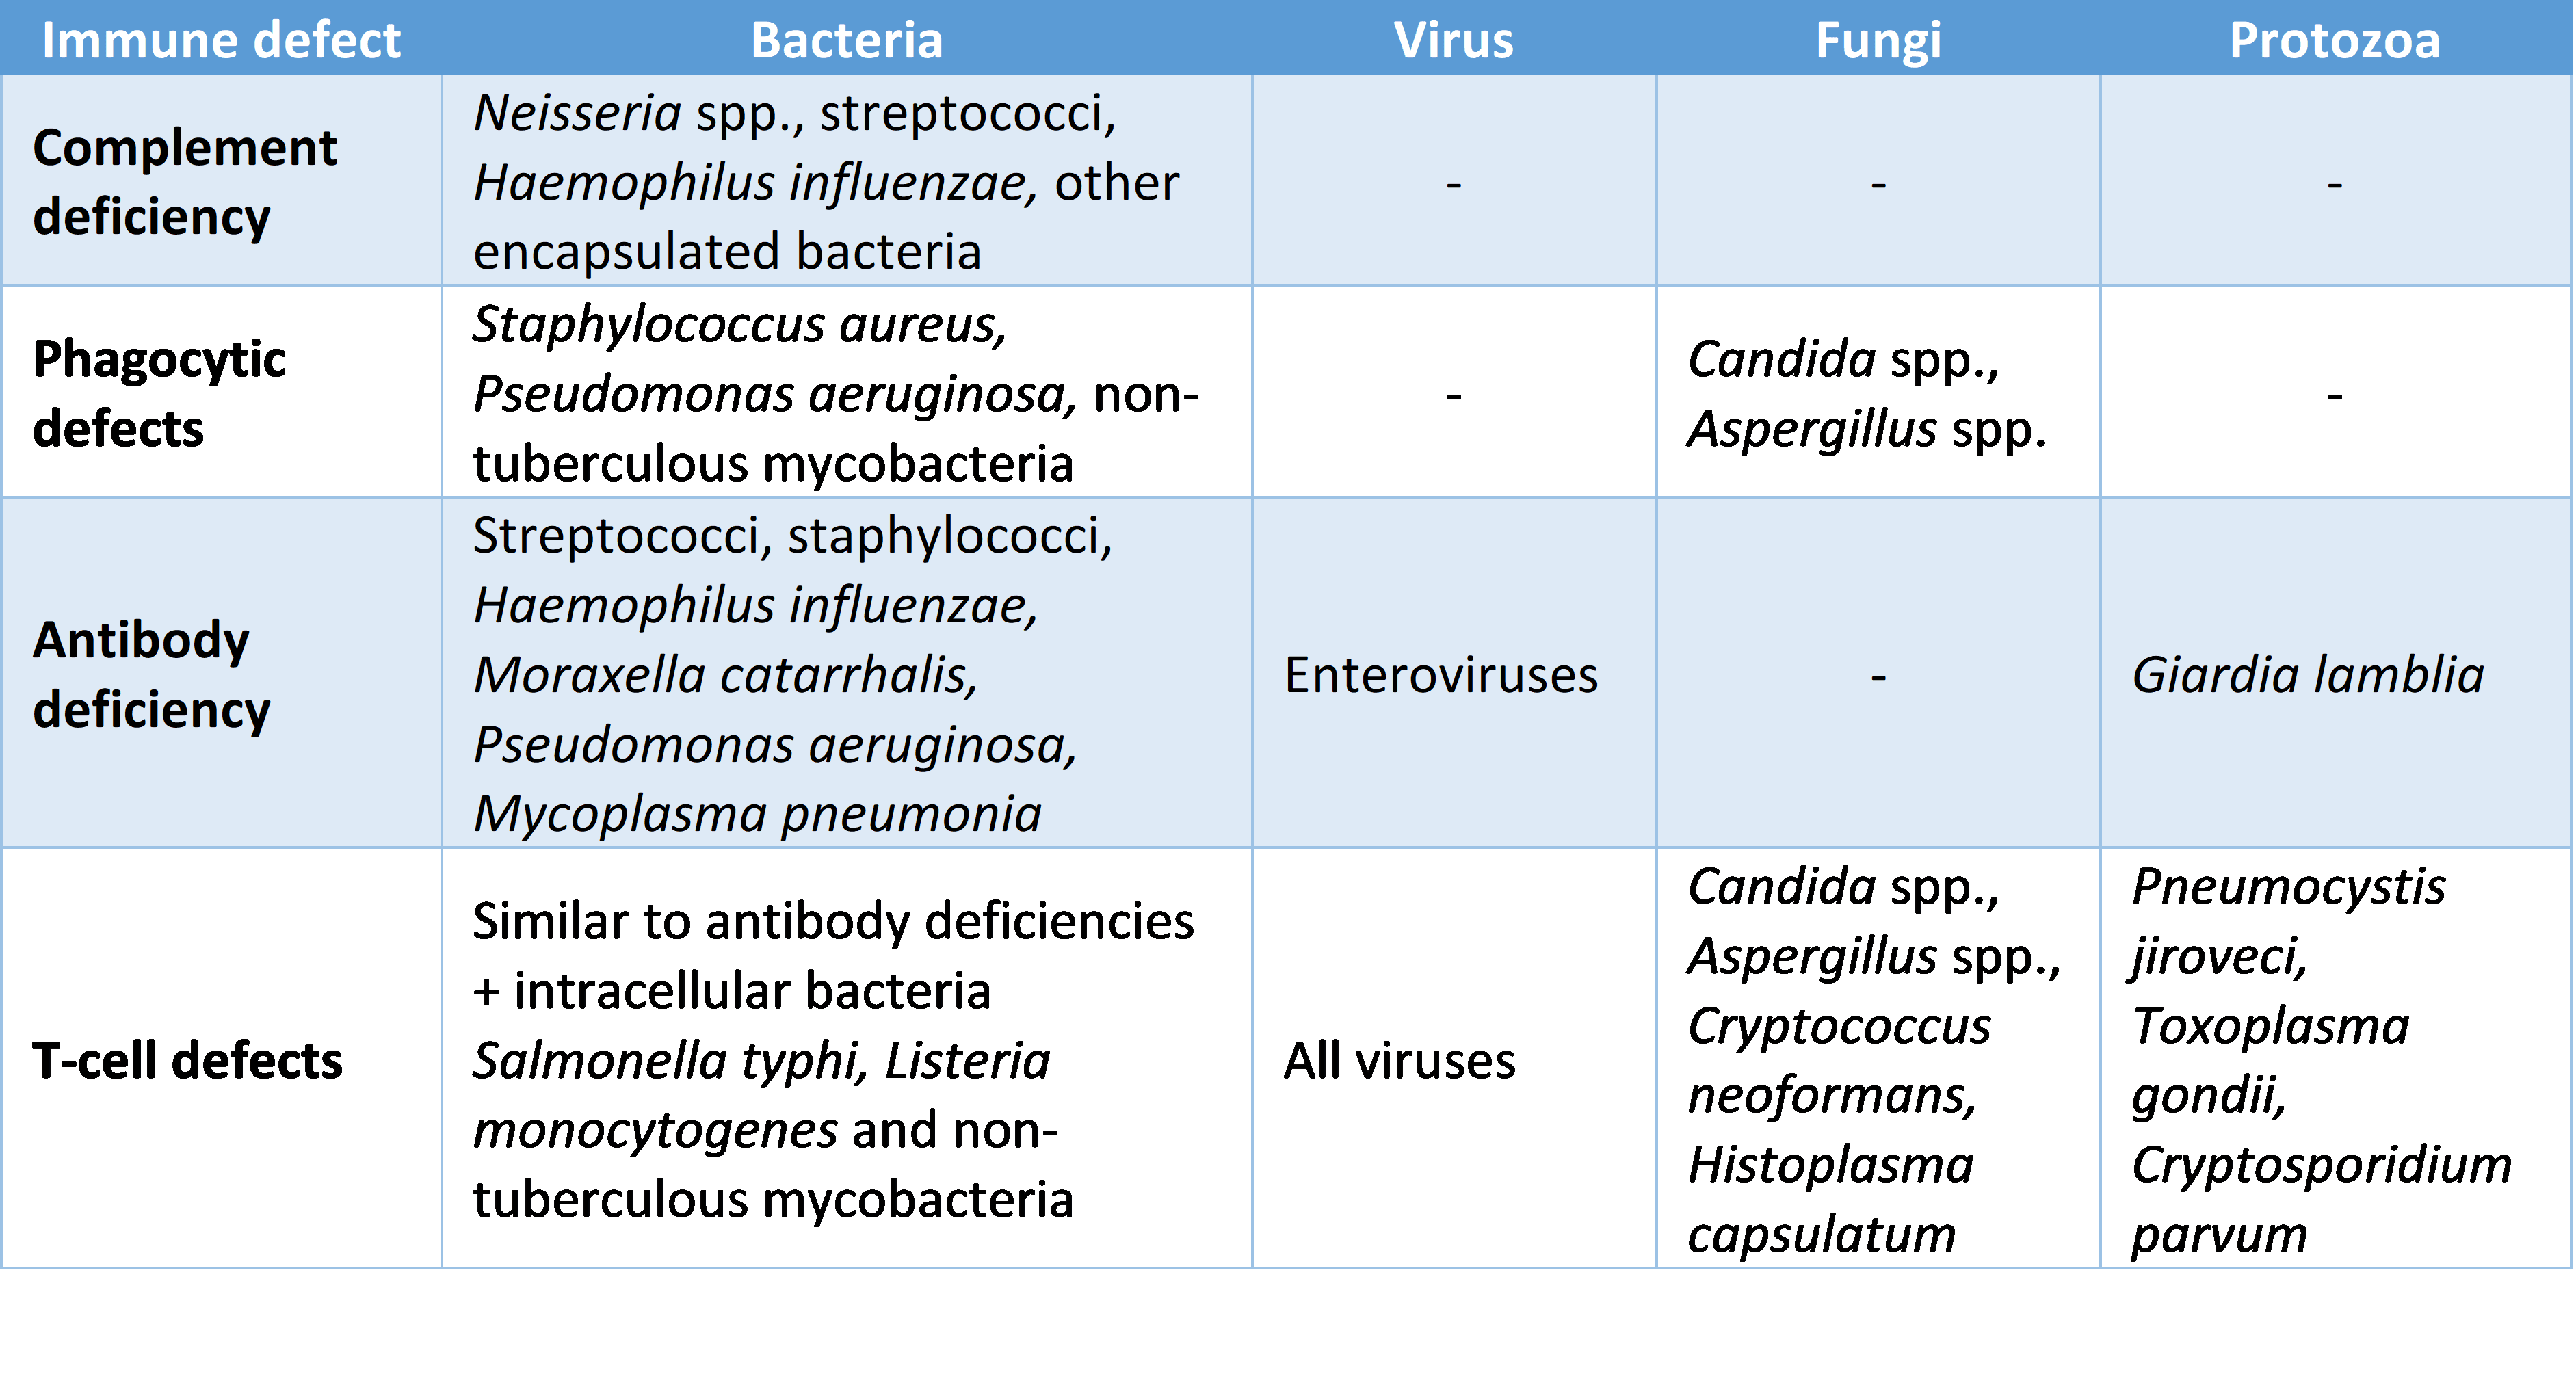 Immune defect infections SimpleMed